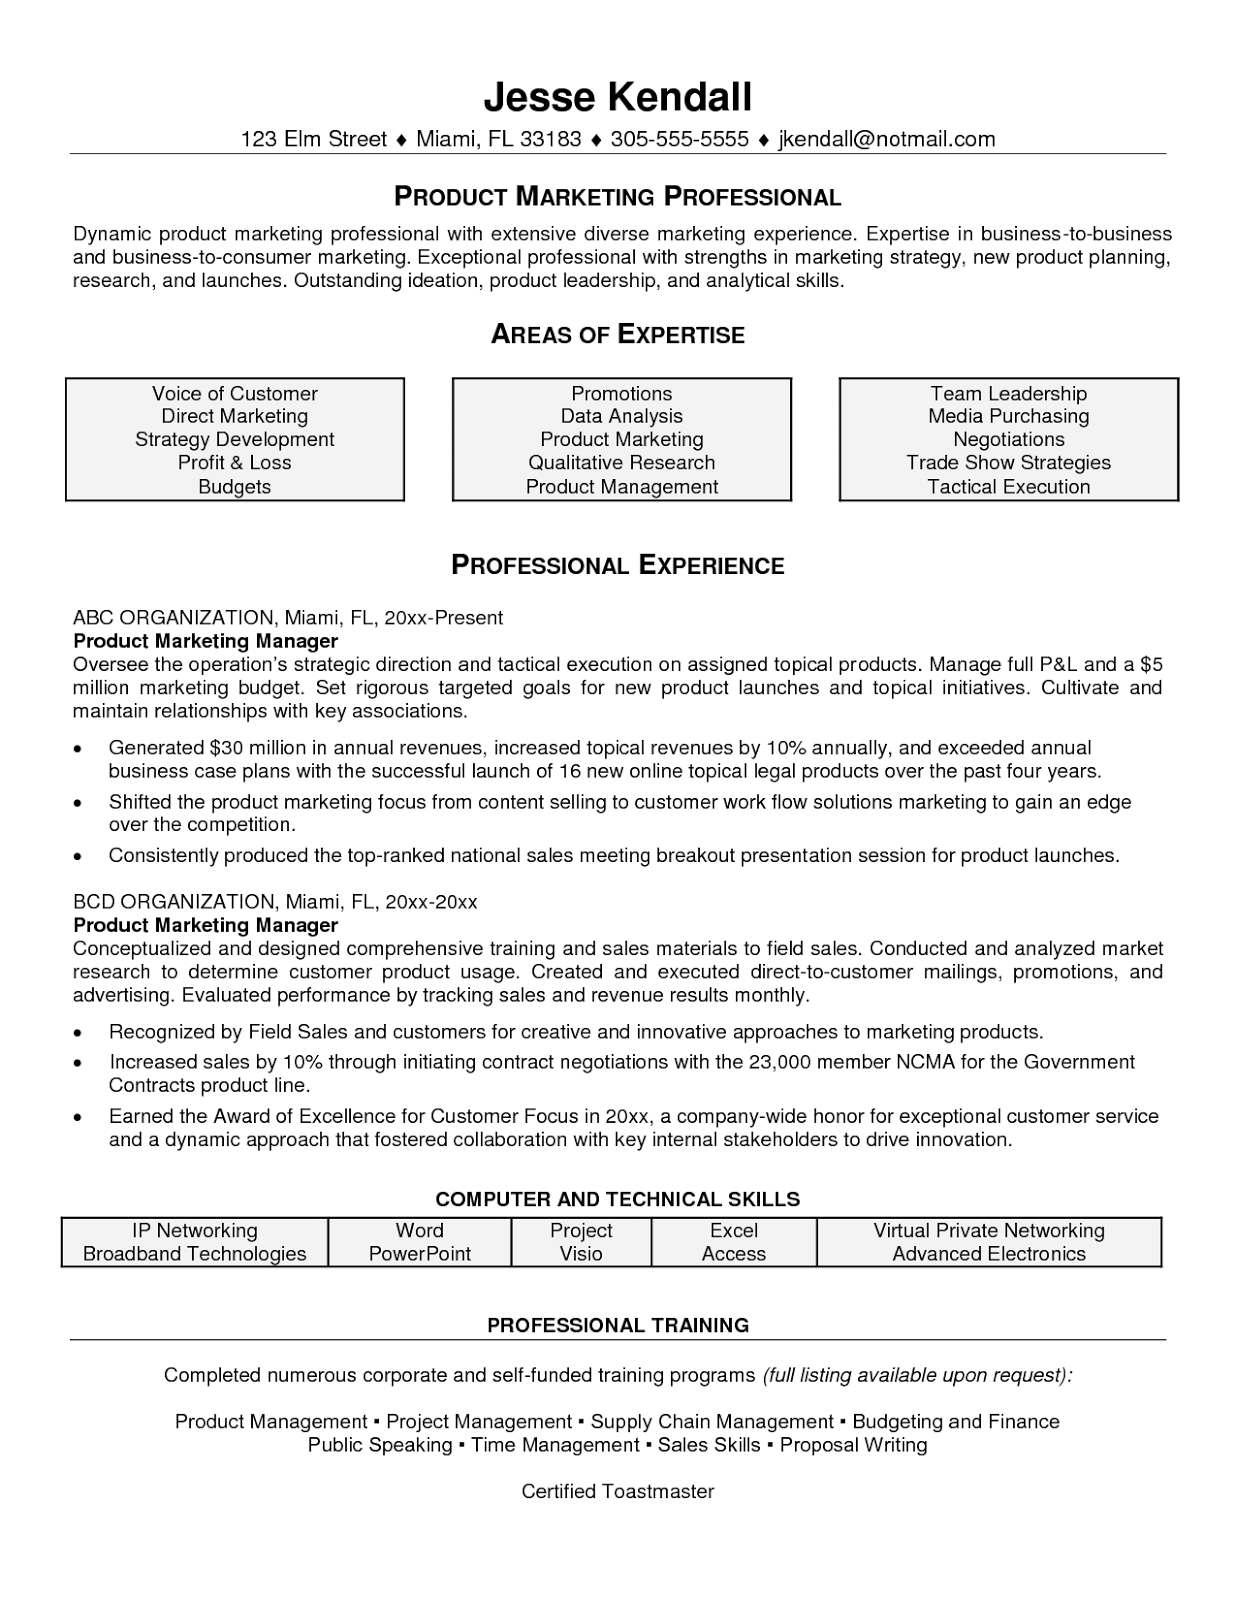 23 Product Manager Resume Example in 2020 Resume